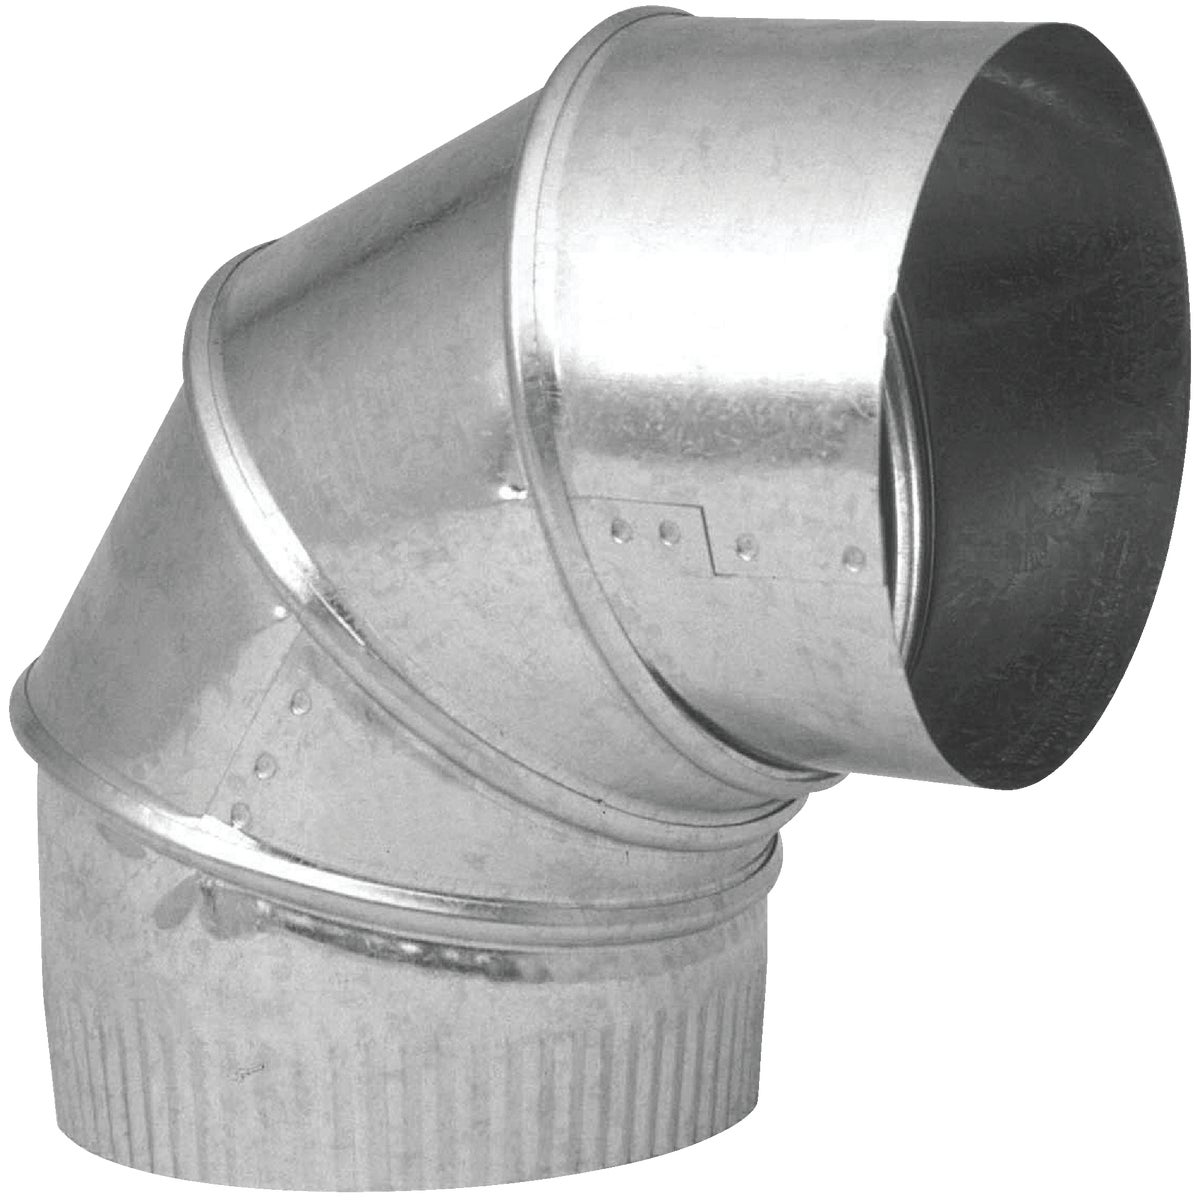 "7"" 28GA GALV ADJ ELBOW - GV0300-C by Imperial Mfg Group"